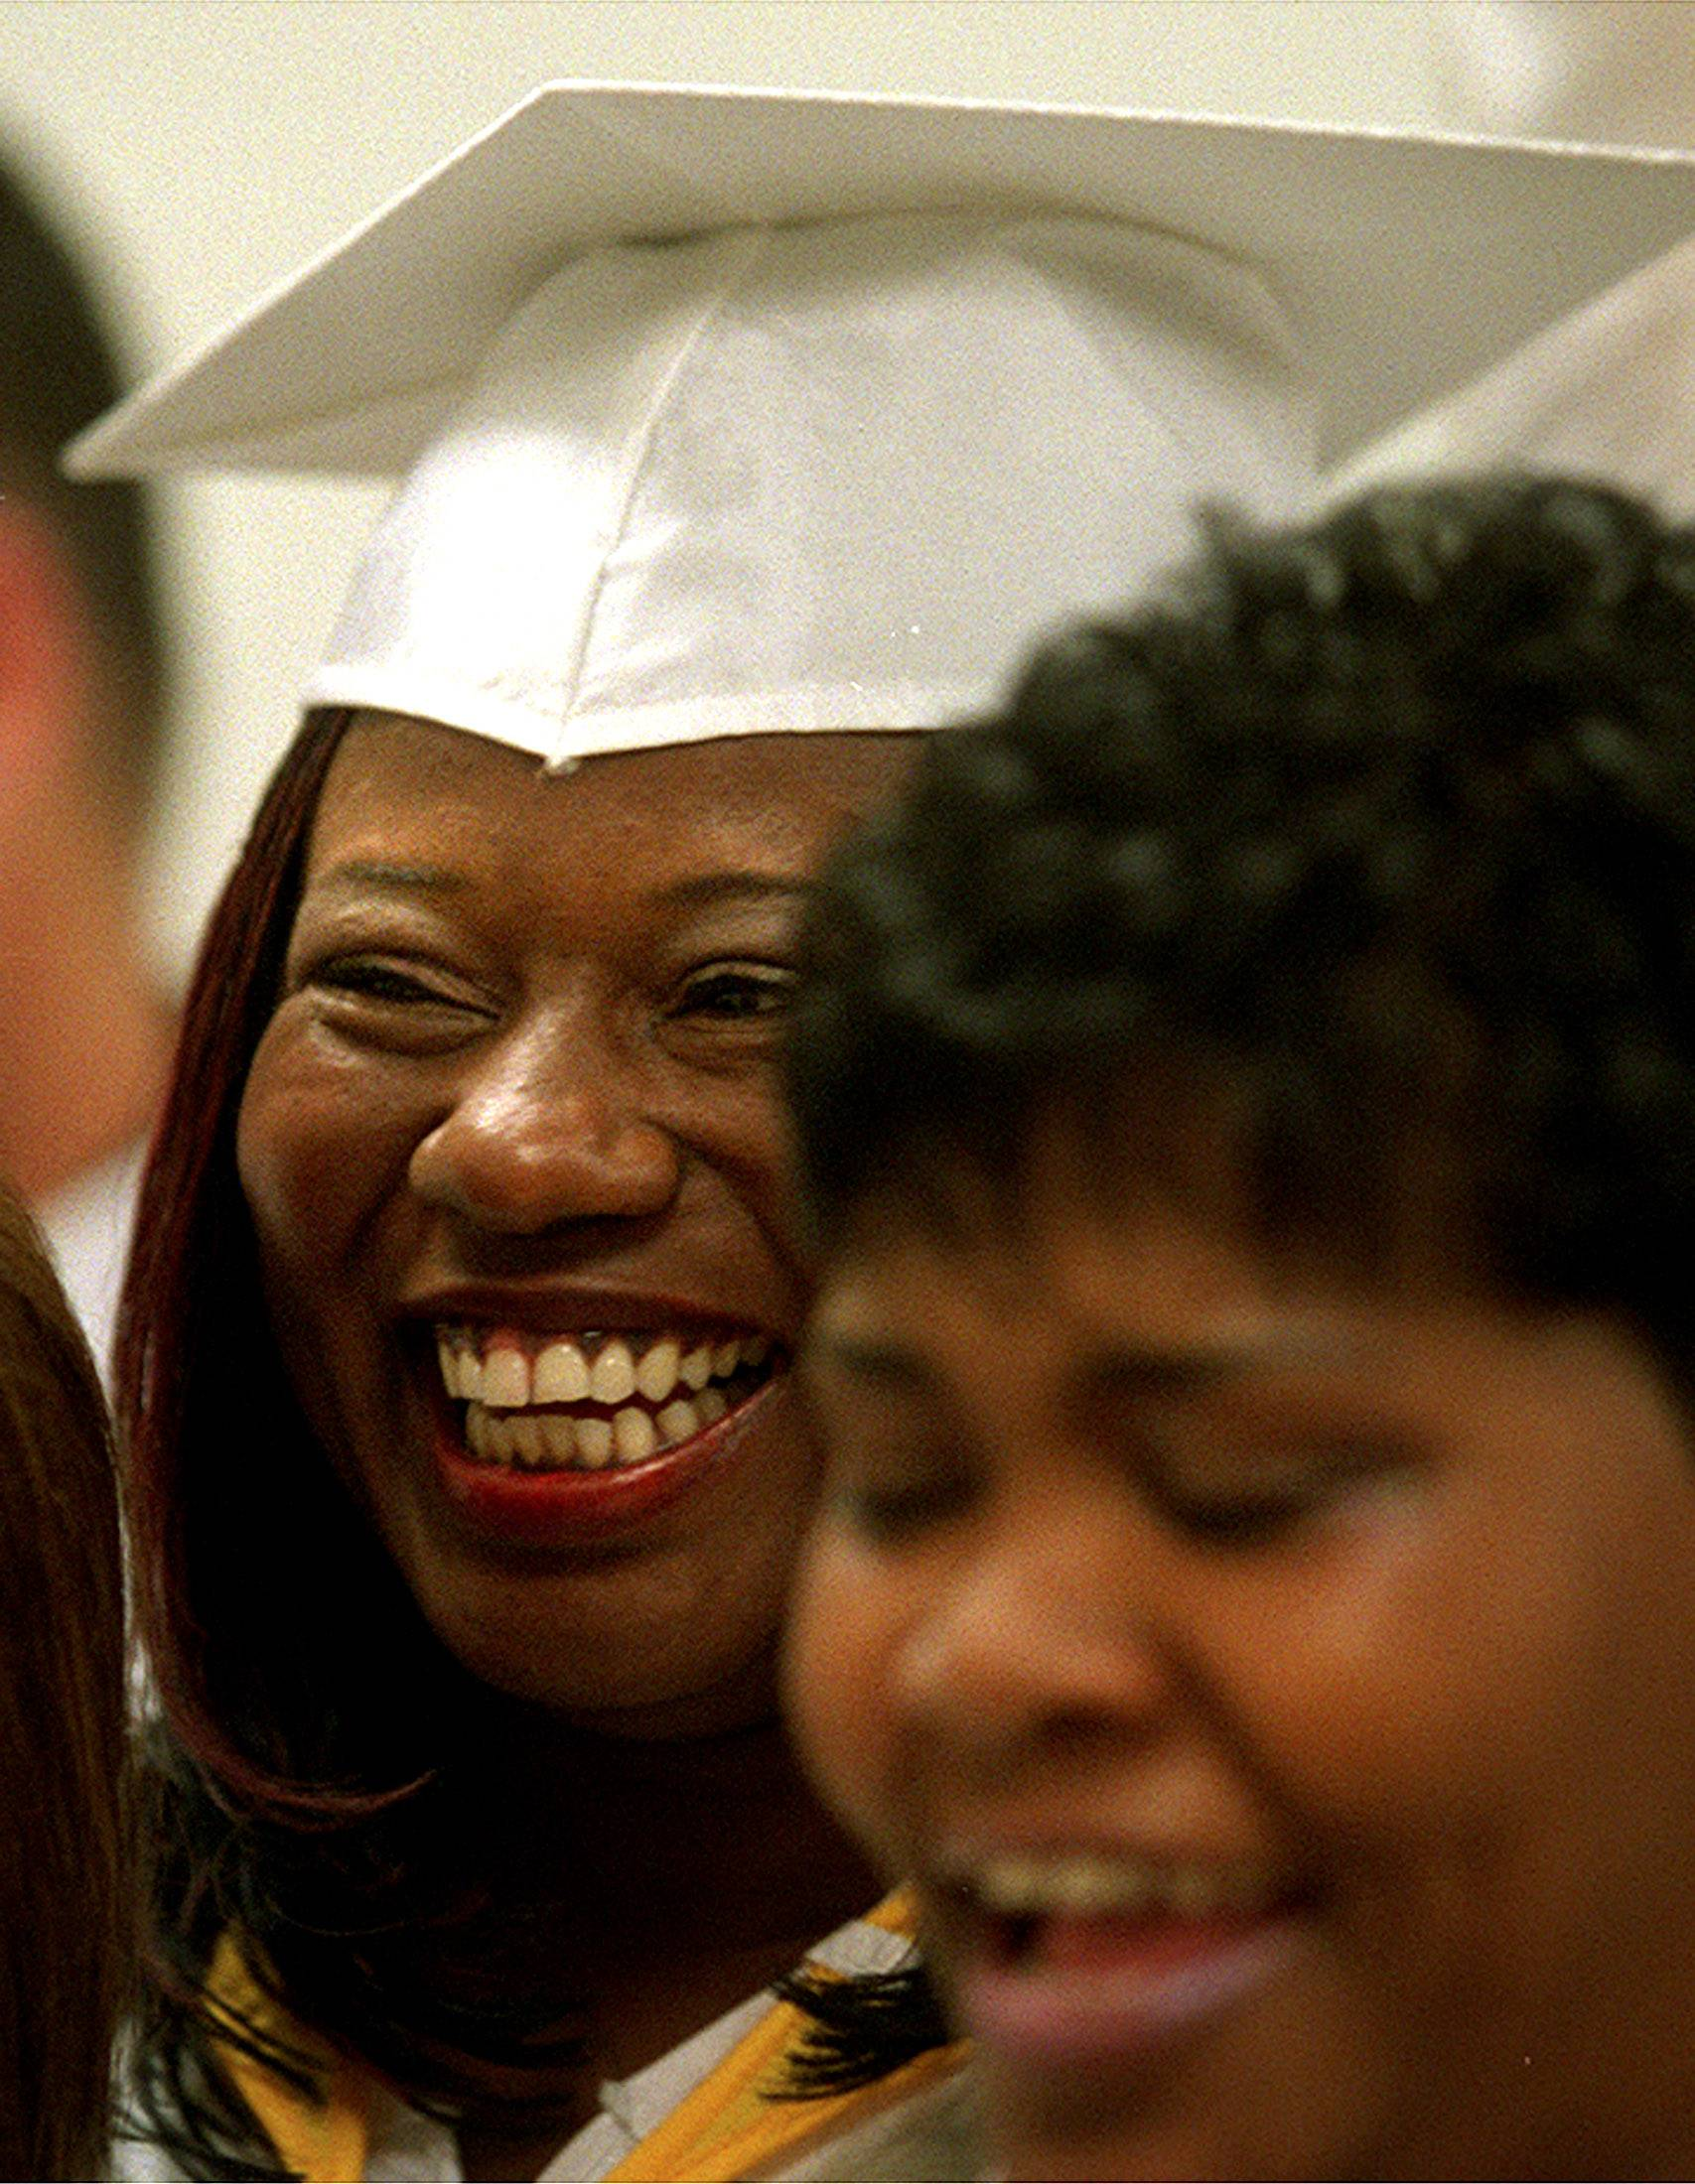 Vernita McGee (left) of Aurora and Kimberlee Morris (right) of Elgin share a laugh with fellow graduates as they prepare to march during the Kane County Drug Court graduation at Christ Community Church in St Charles on Thursday.